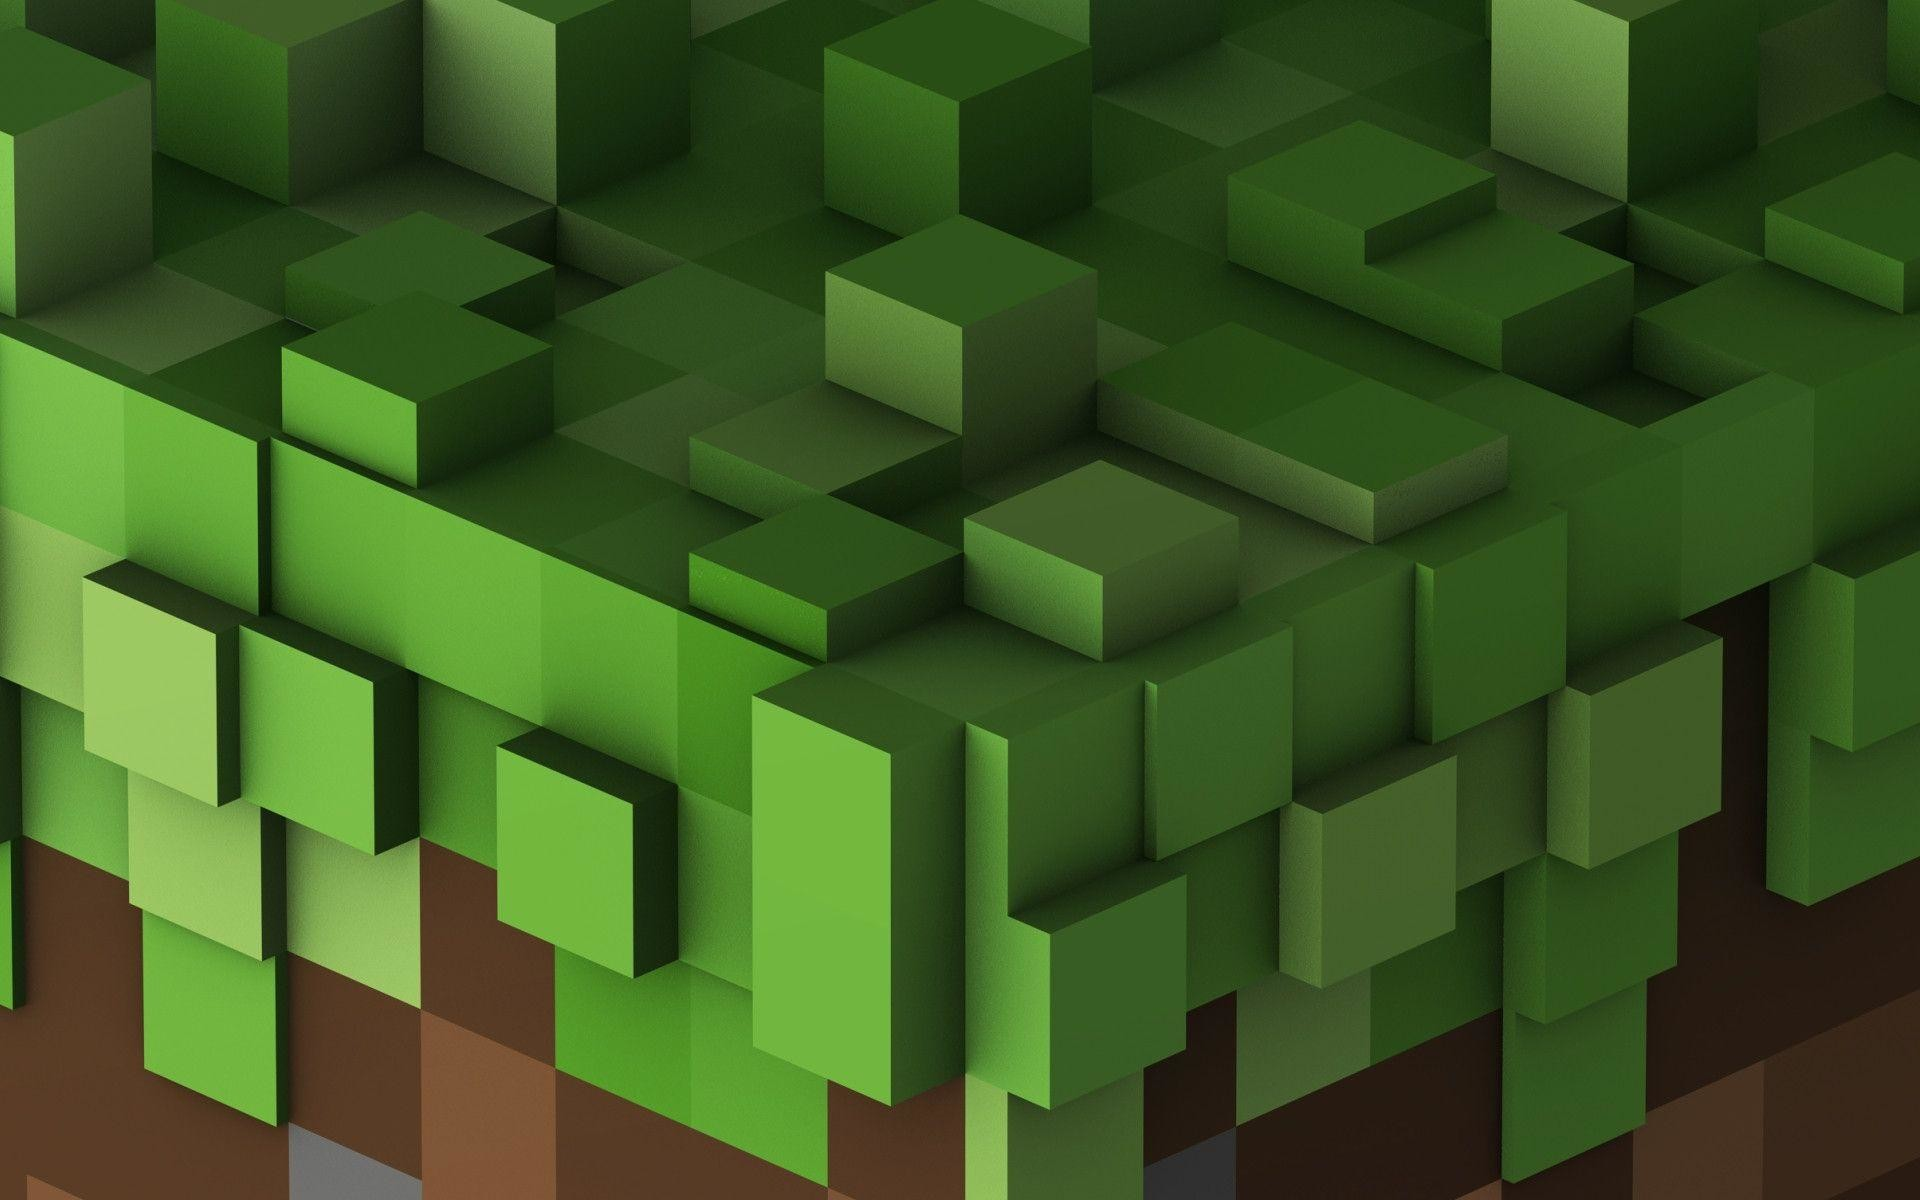 Wonderful Wallpaper Minecraft Aaron - 718028-free-minecraft-wallpaper-pictures-1920x1200-laptop  Perfect Image Reference_908062.jpg